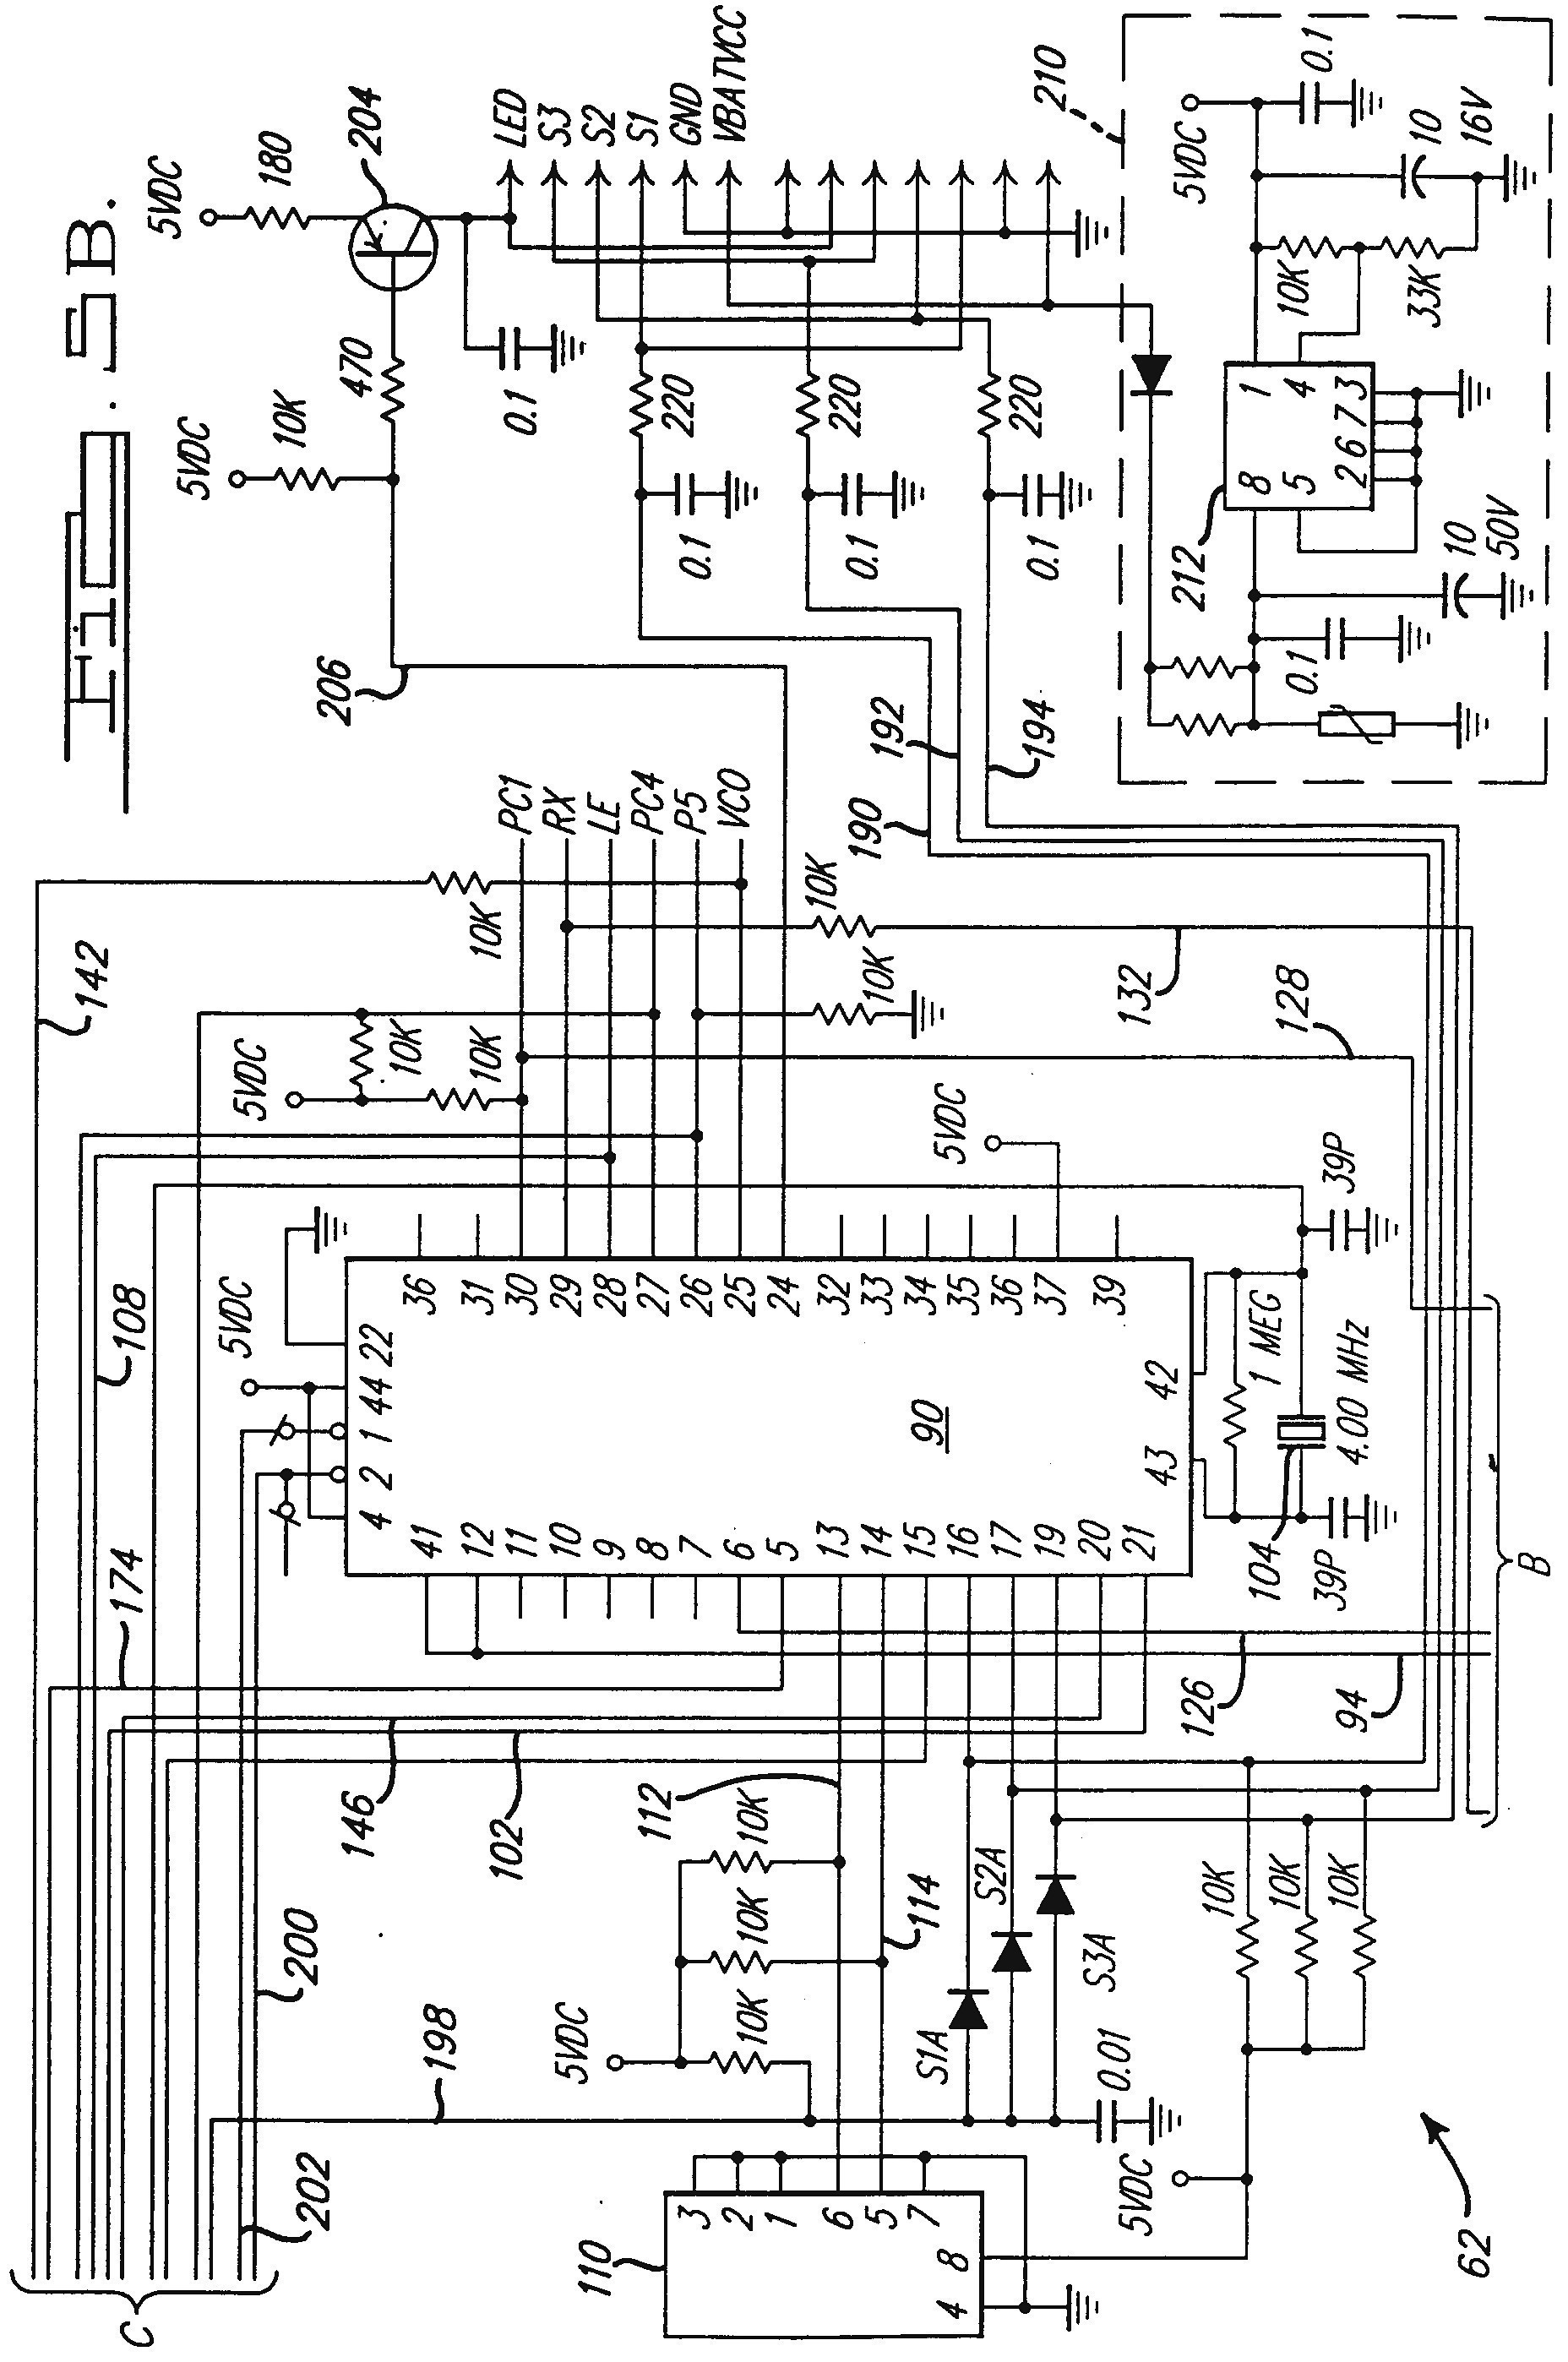 Wilson Trailer Wiring Diagram And Schematics 2008 Repair Rh Banyan Palace Com Flatbed Loading